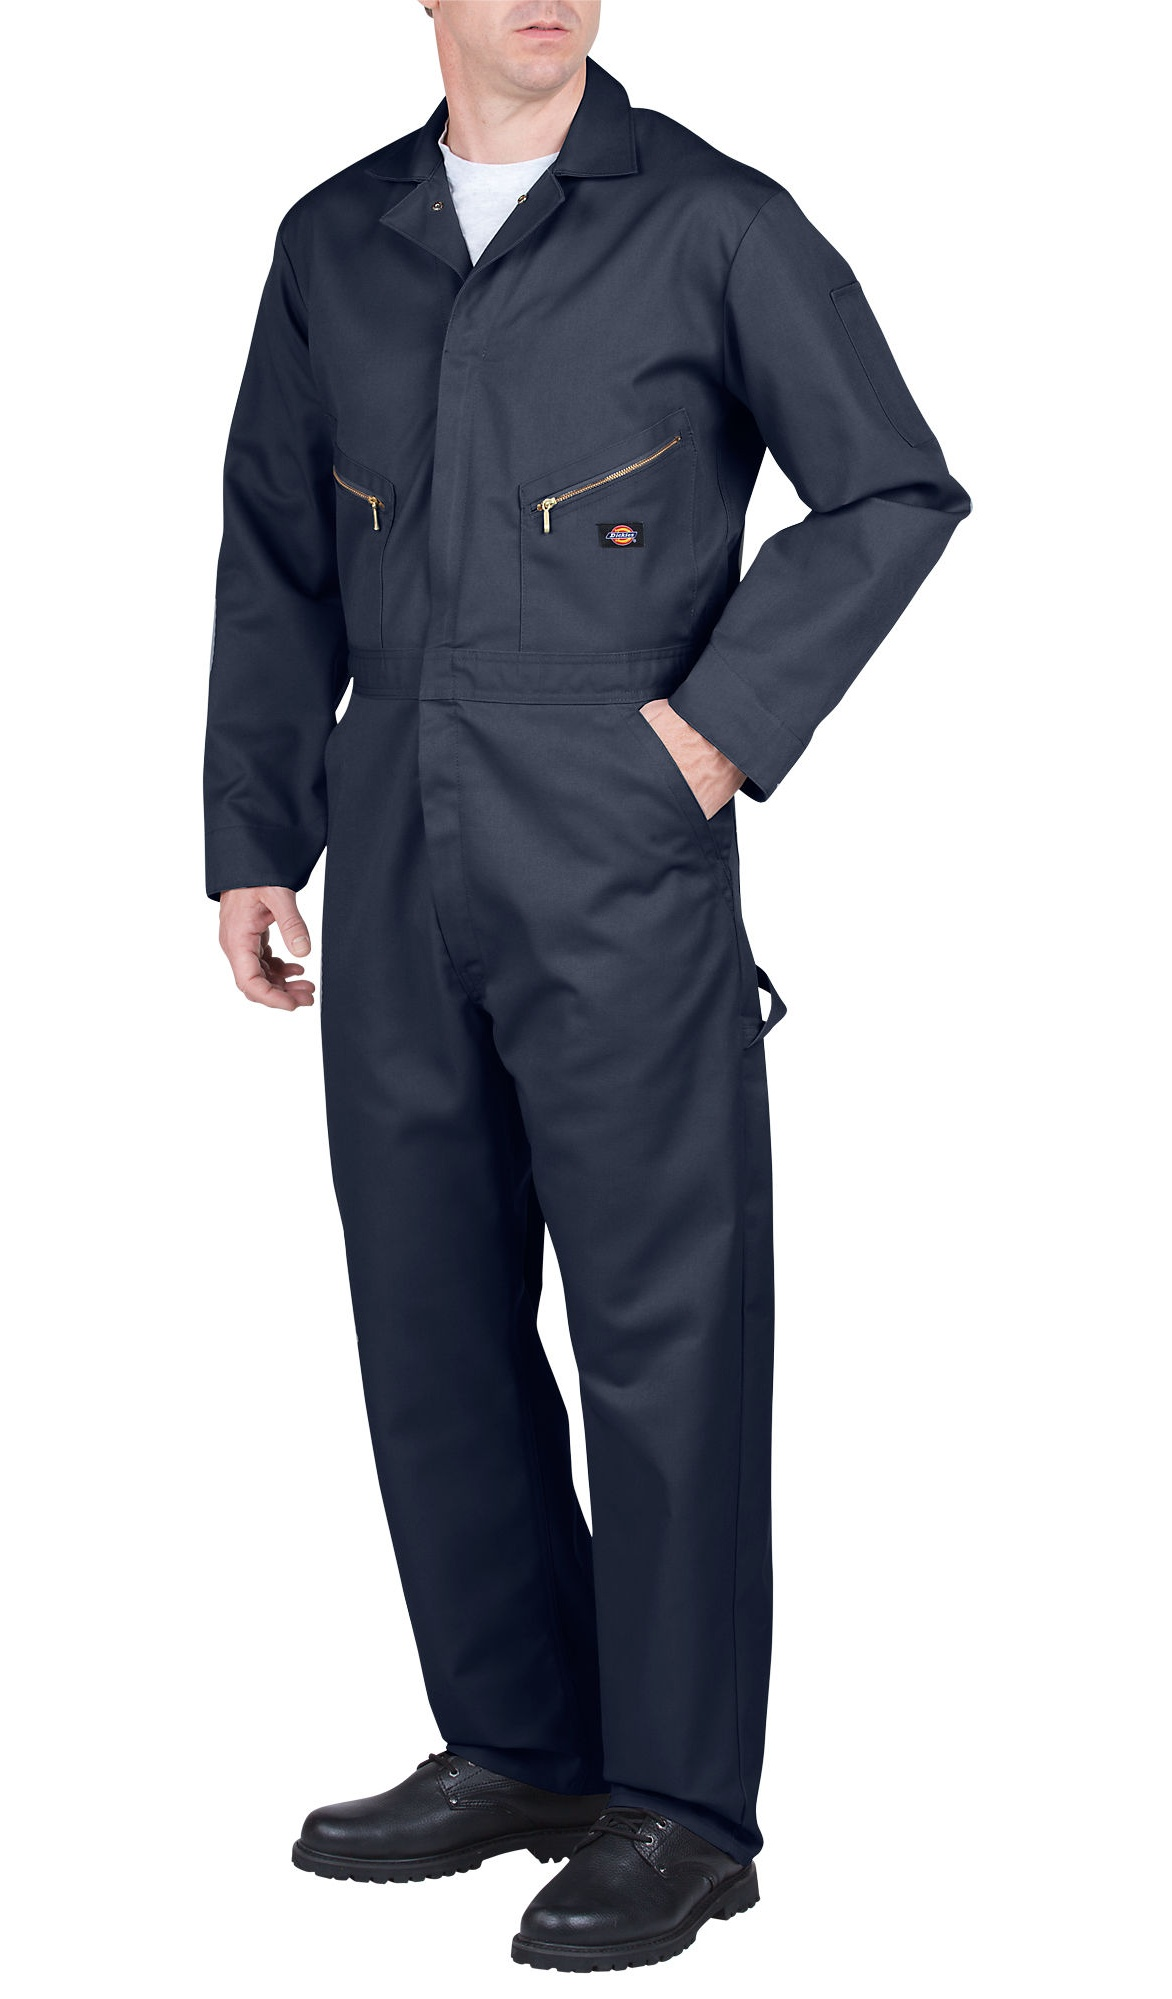 Mens Deluxe Blended Coverall, Dark Navy XL S by Dickies